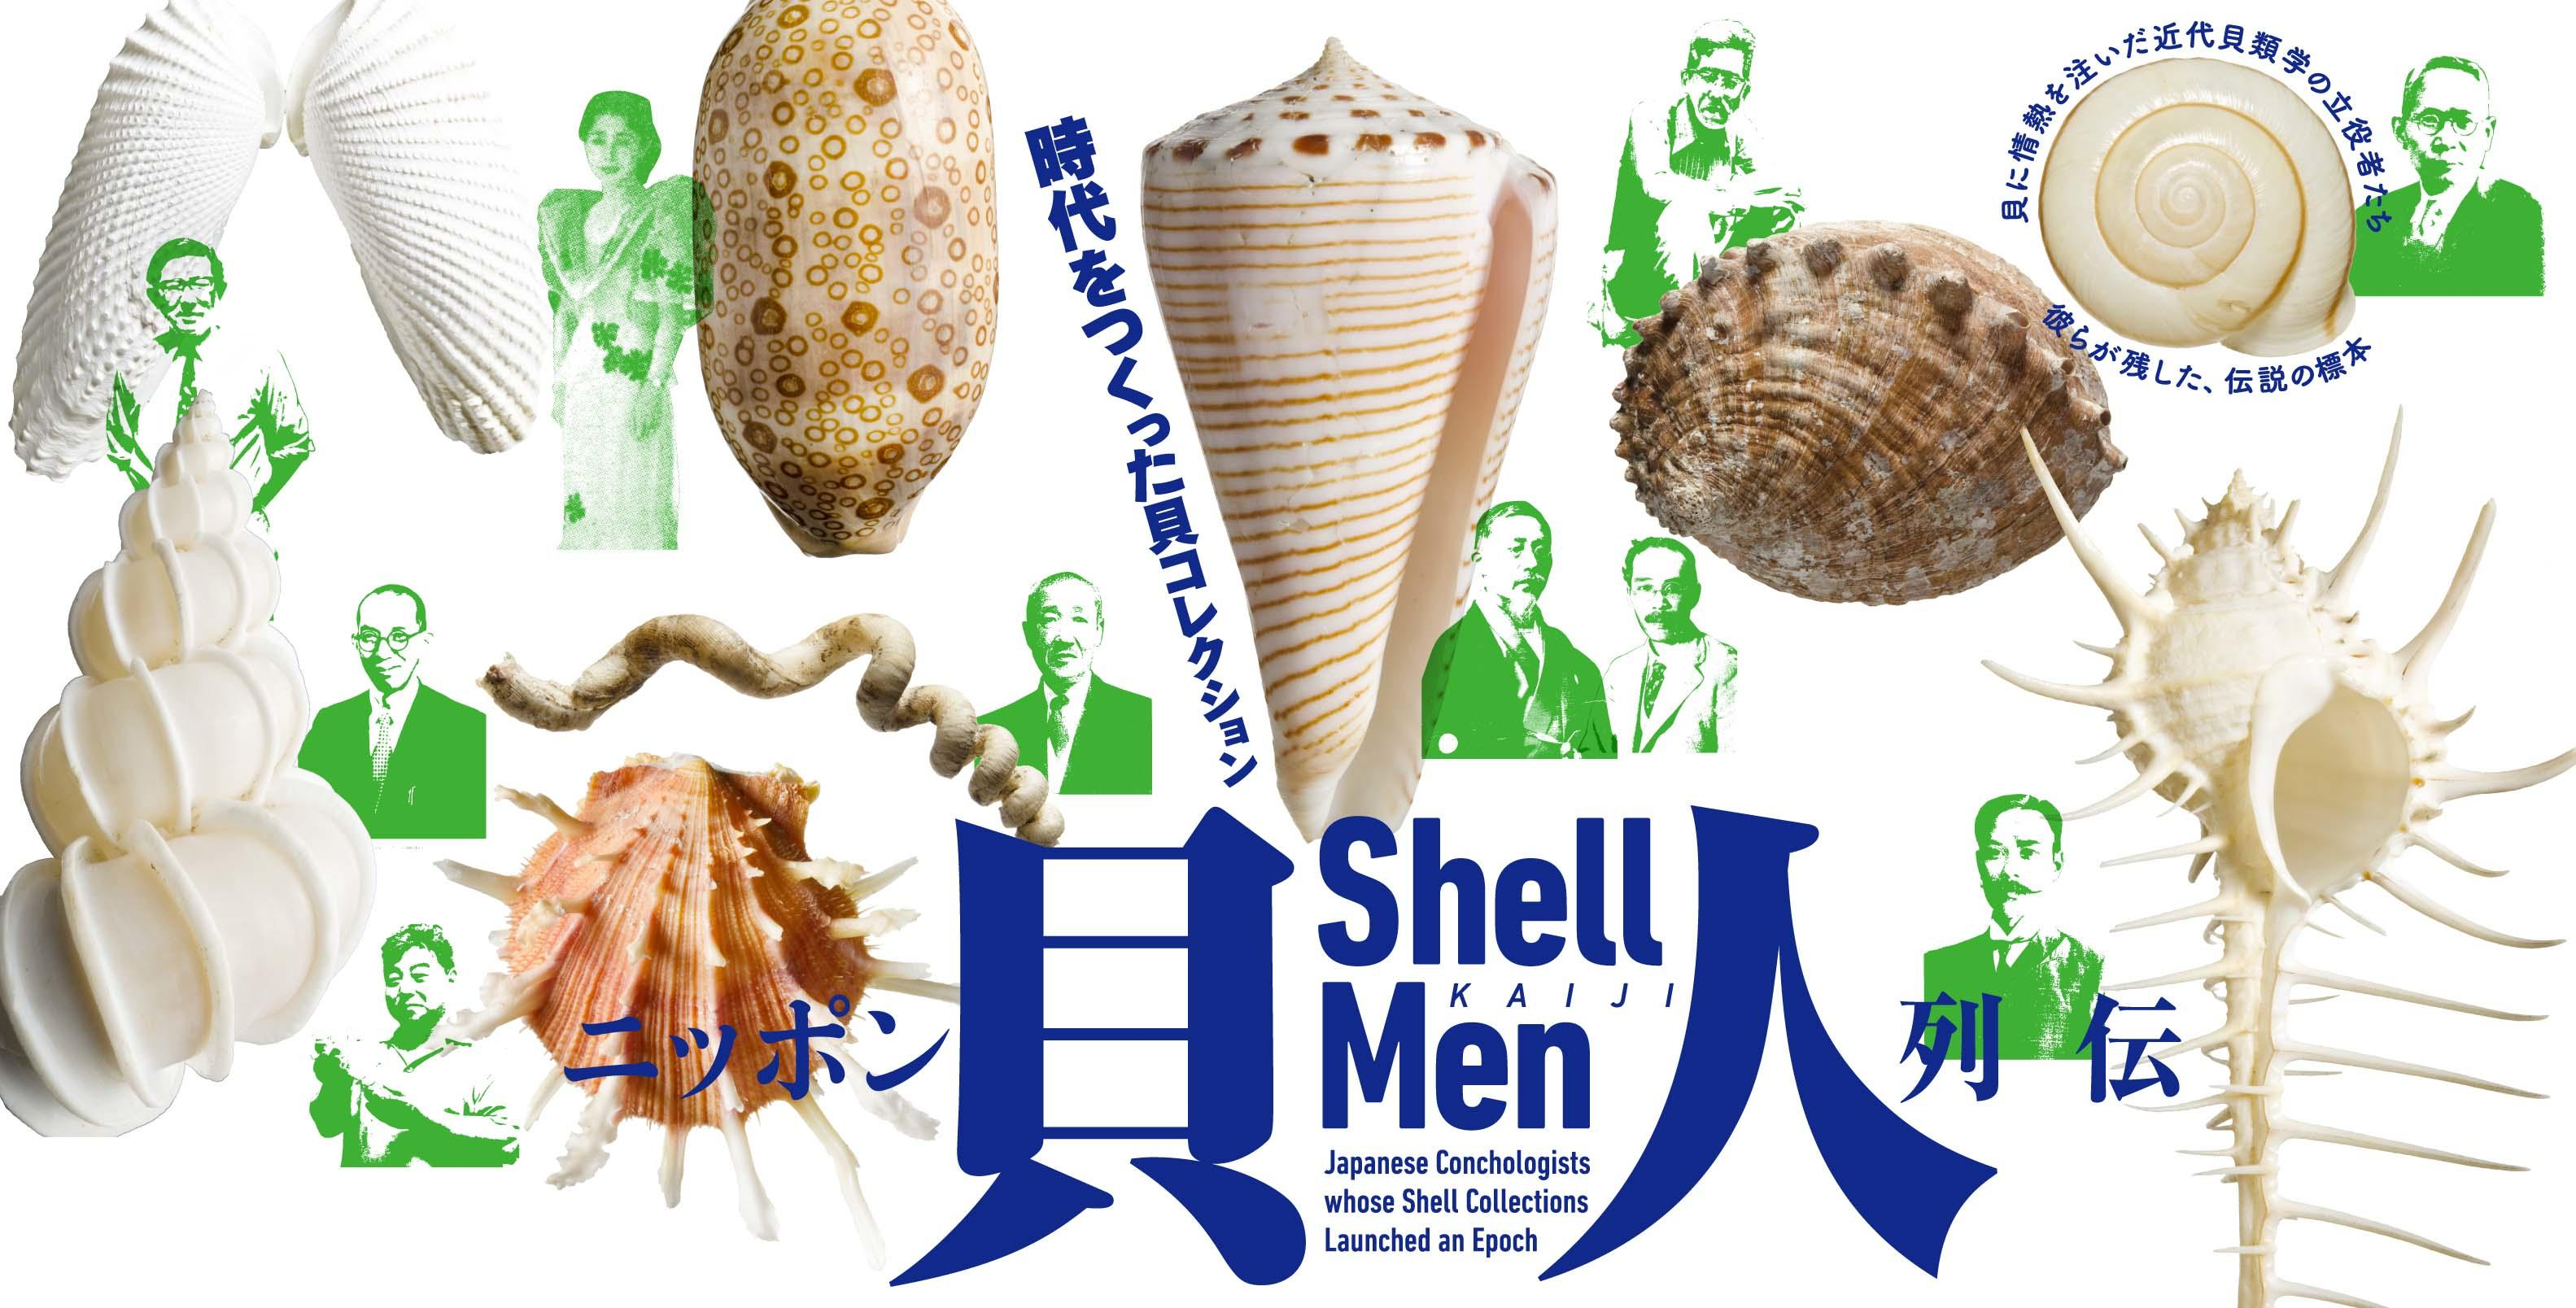 Kaijin--Shell Men<br> : Japanese Conchologists whose Shell Collections Launched an Epoch